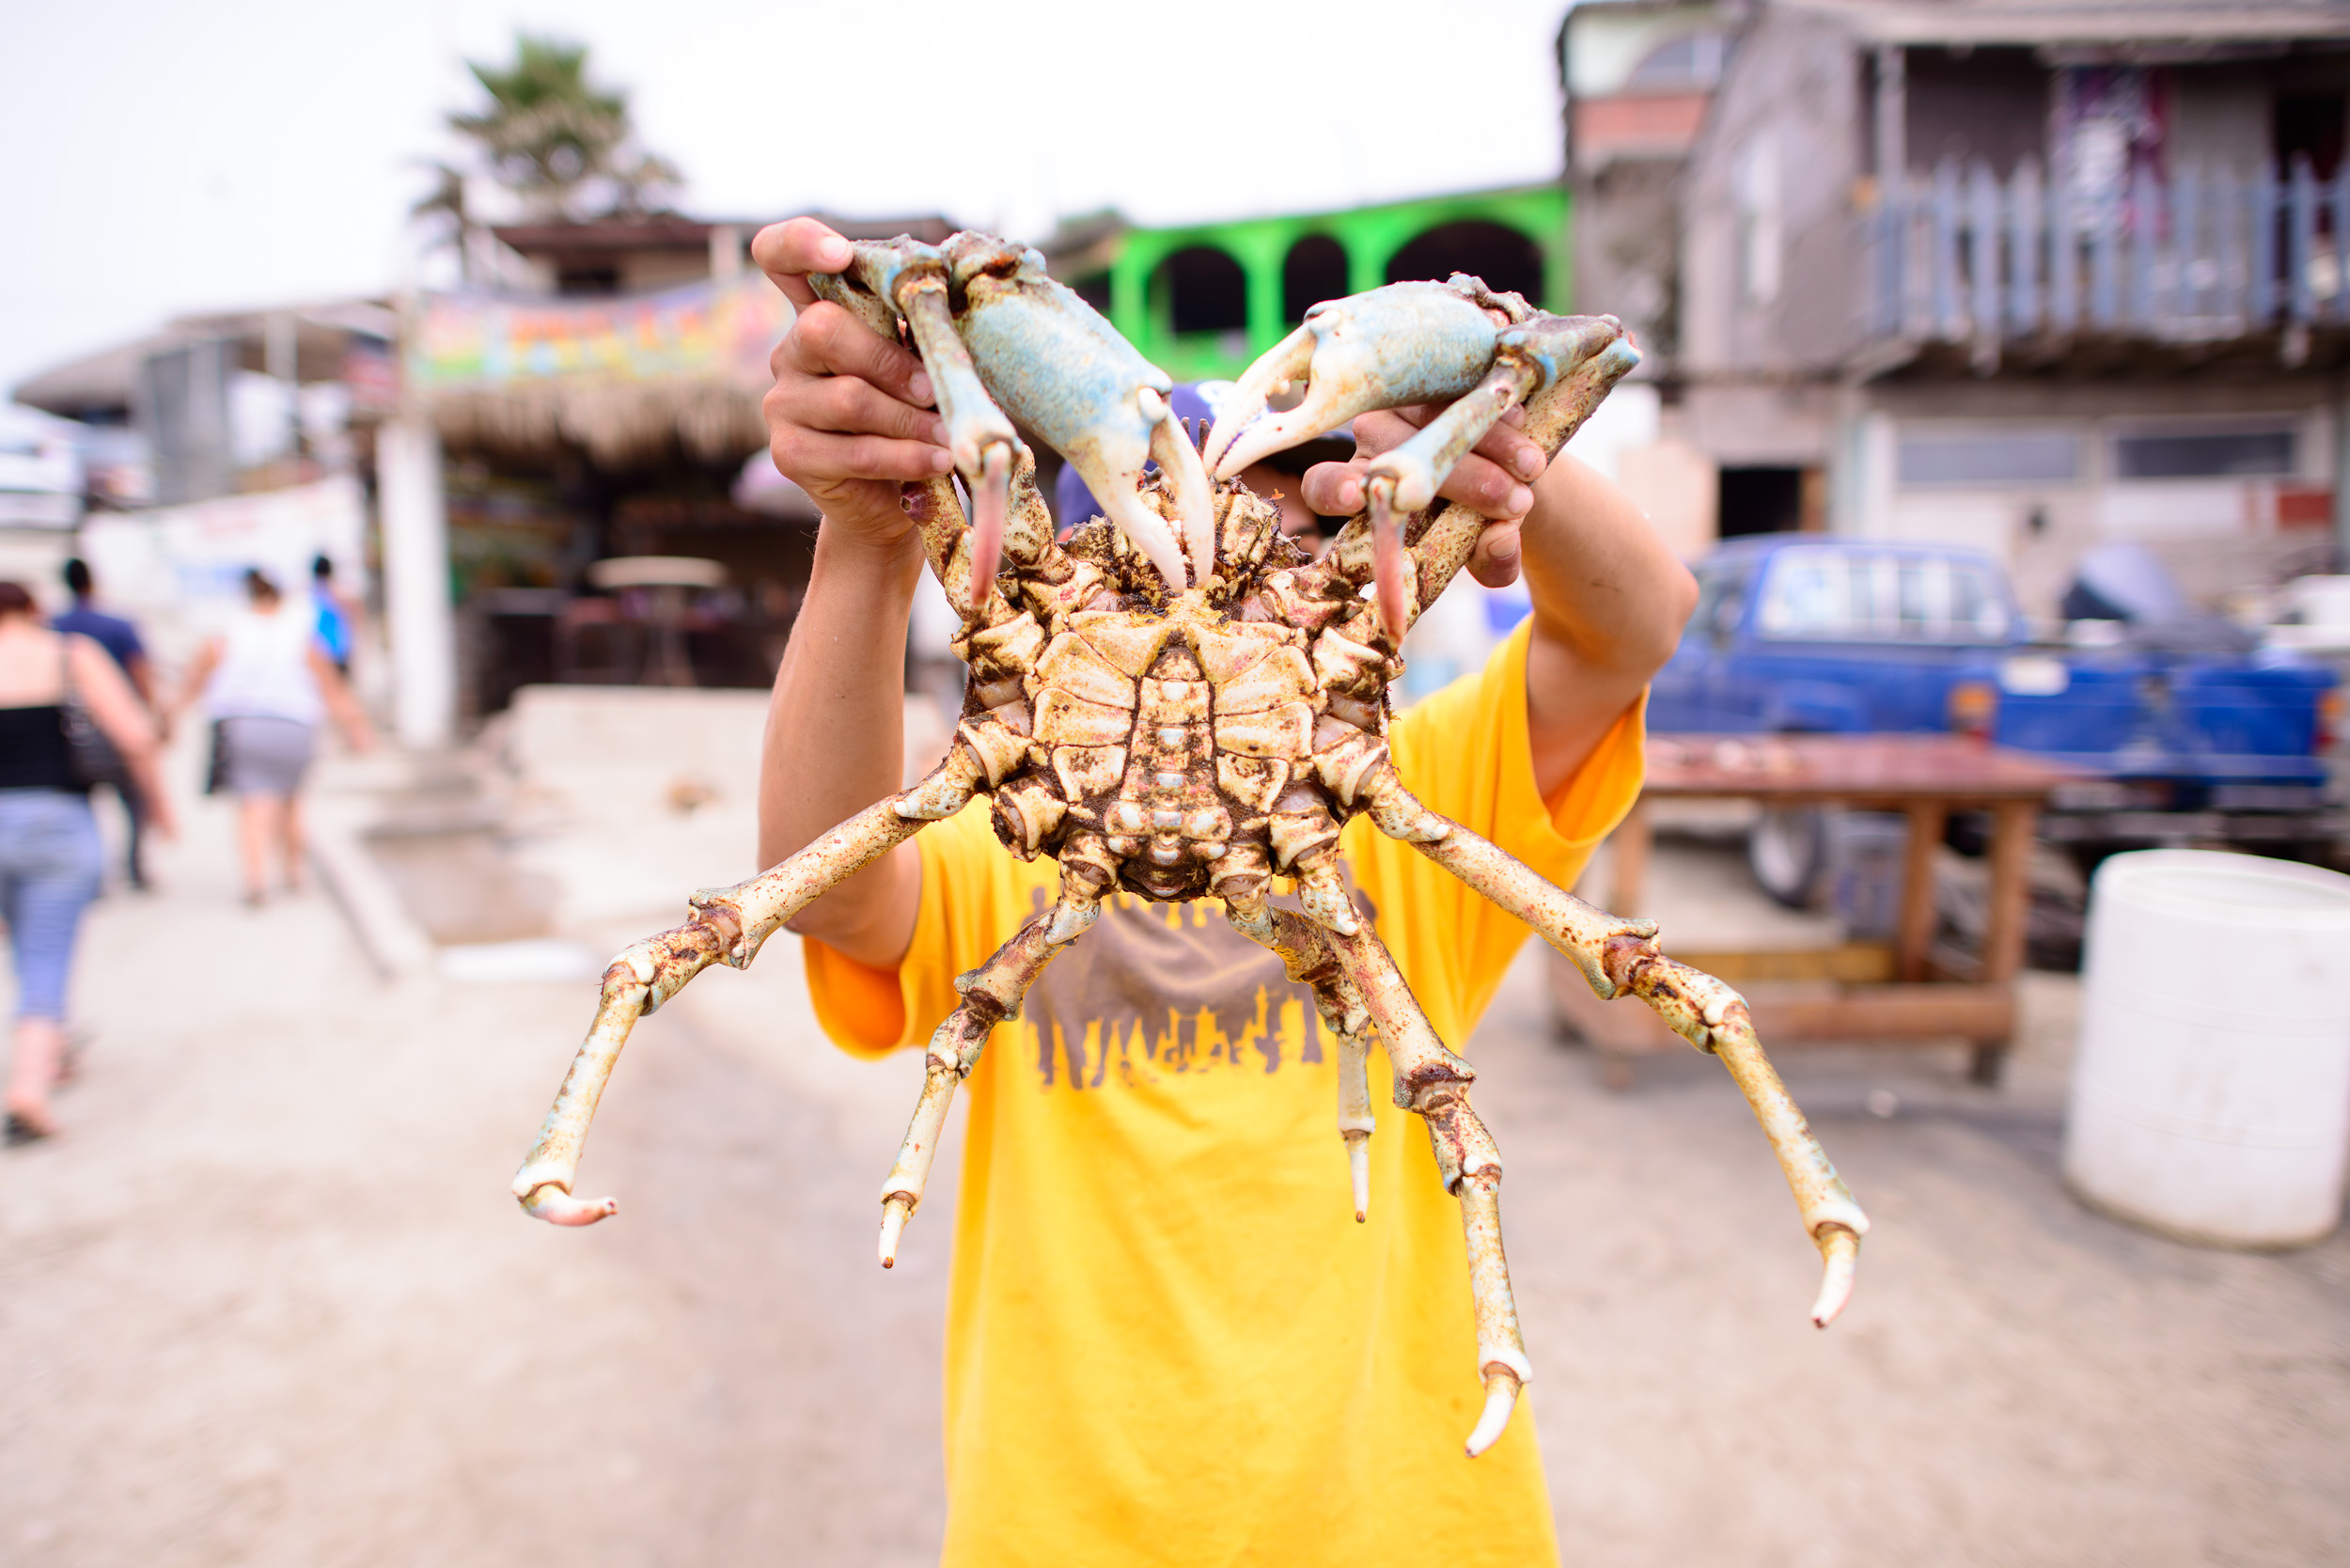 Spider crab, this is our guy